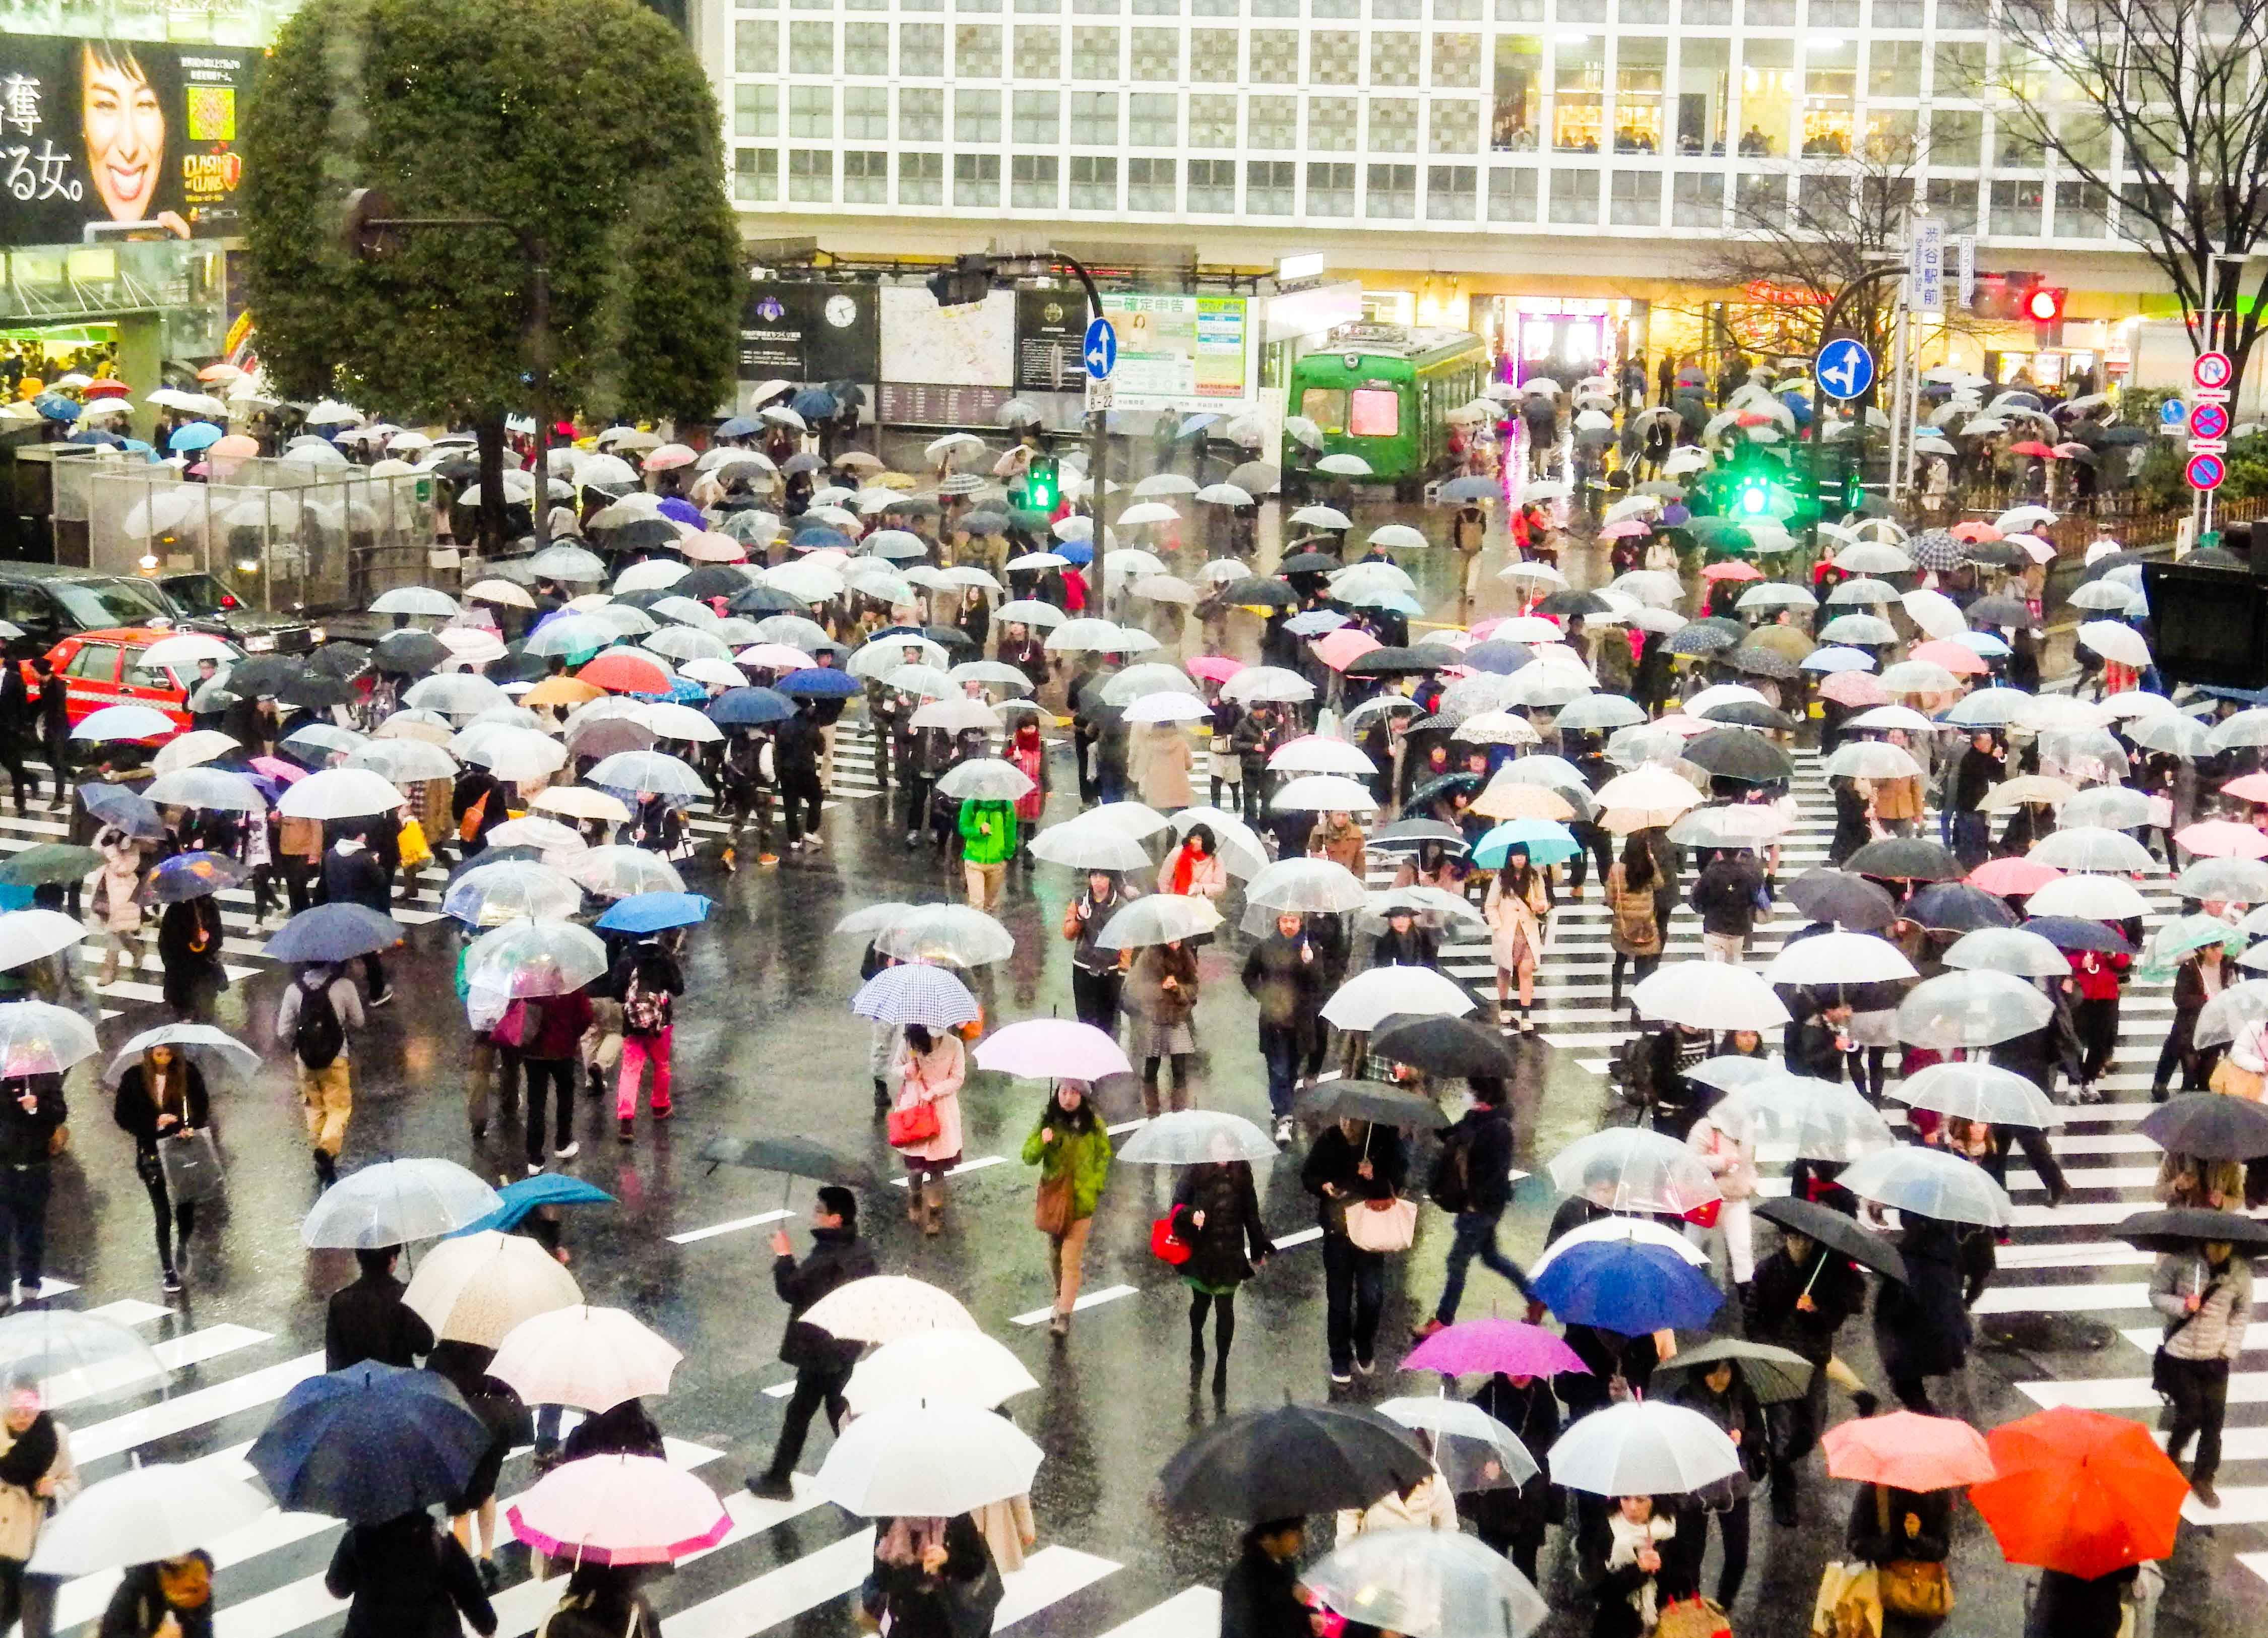 People crossing the Shibuya Scramble with umbrellas in the rain, as seen in Lost in Translation.